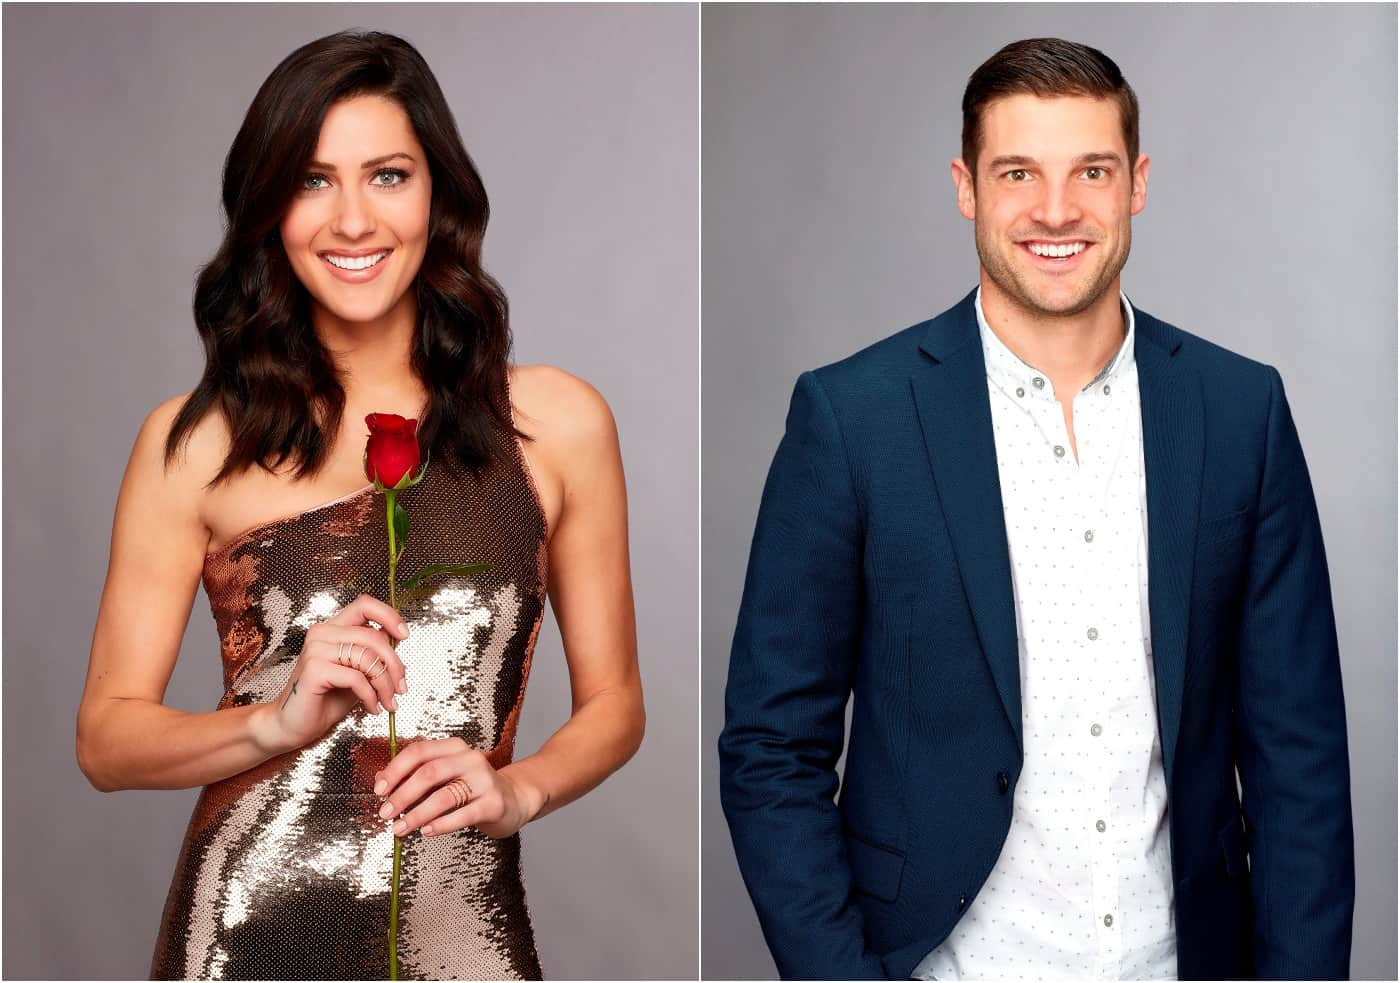 The Bachelorette Becca Kufrin Winner Final Pick Garrett